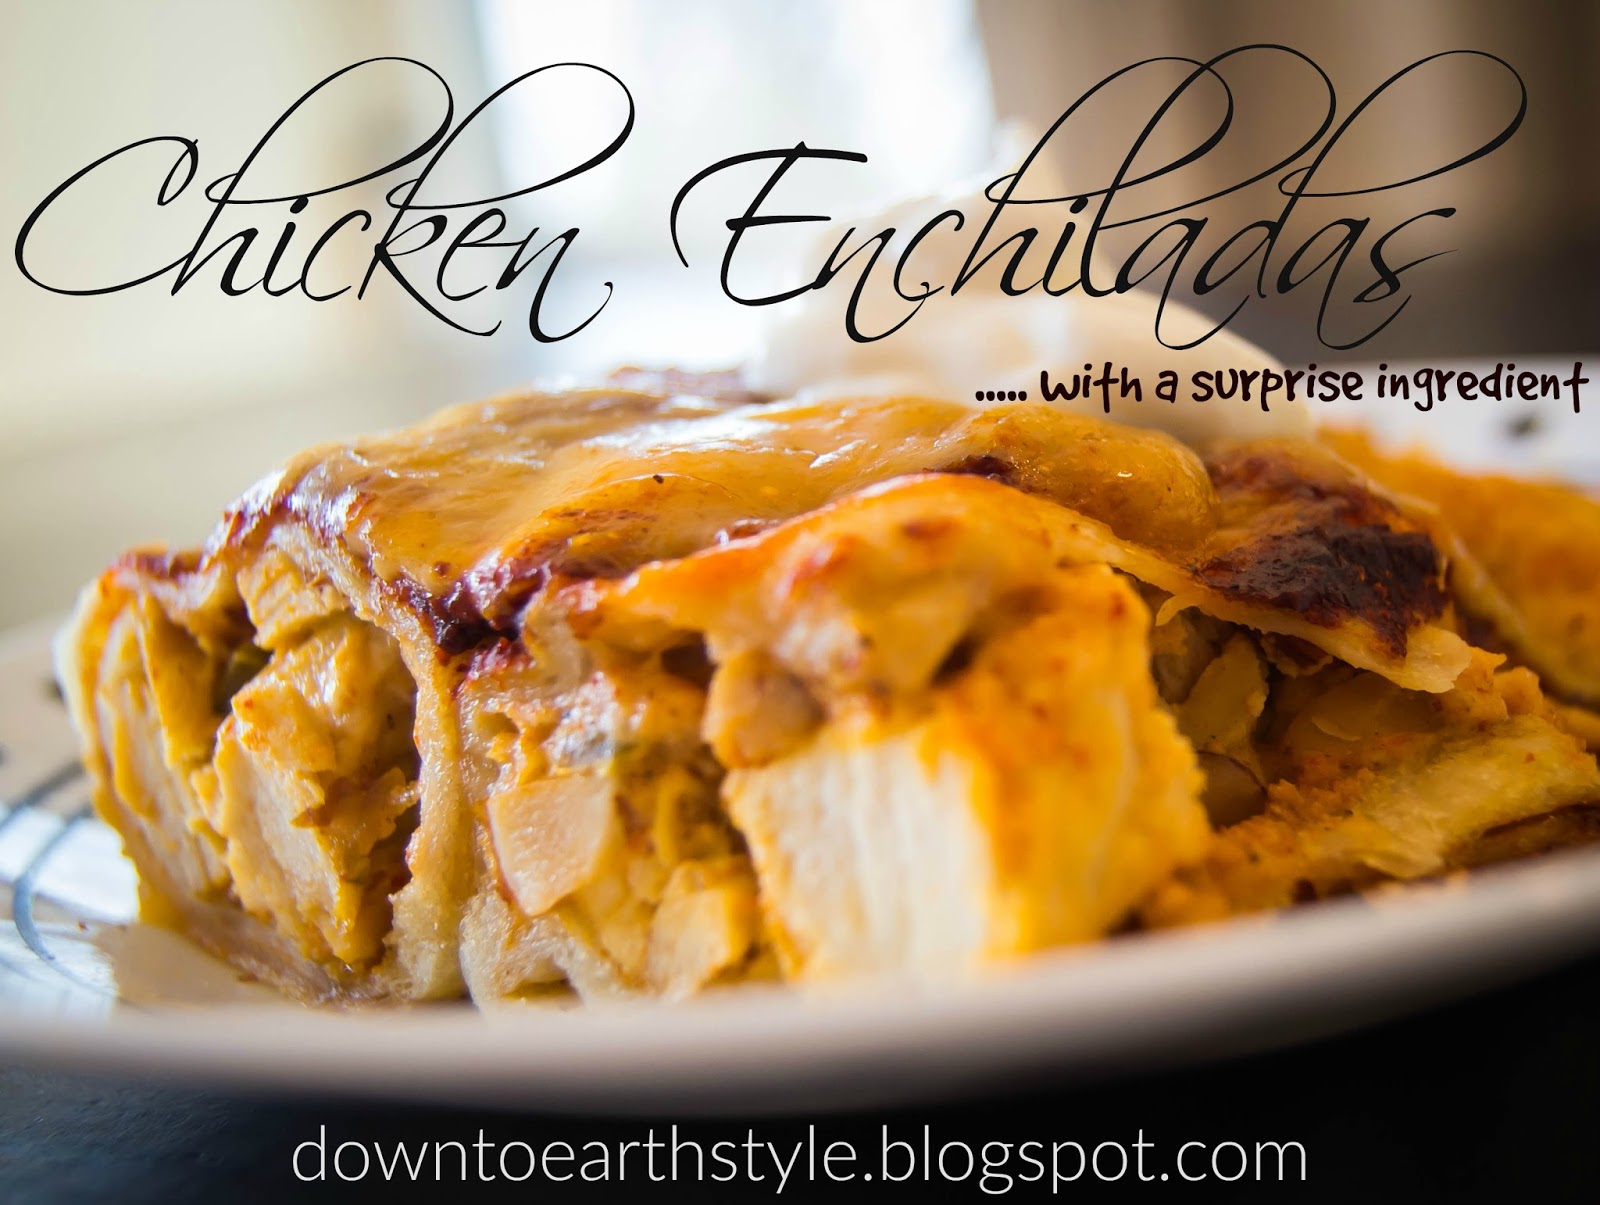 Down to earth style chicken enchiladas yum chicken enchiladas yum this recipe was inspired by a food network forumfinder Choice Image